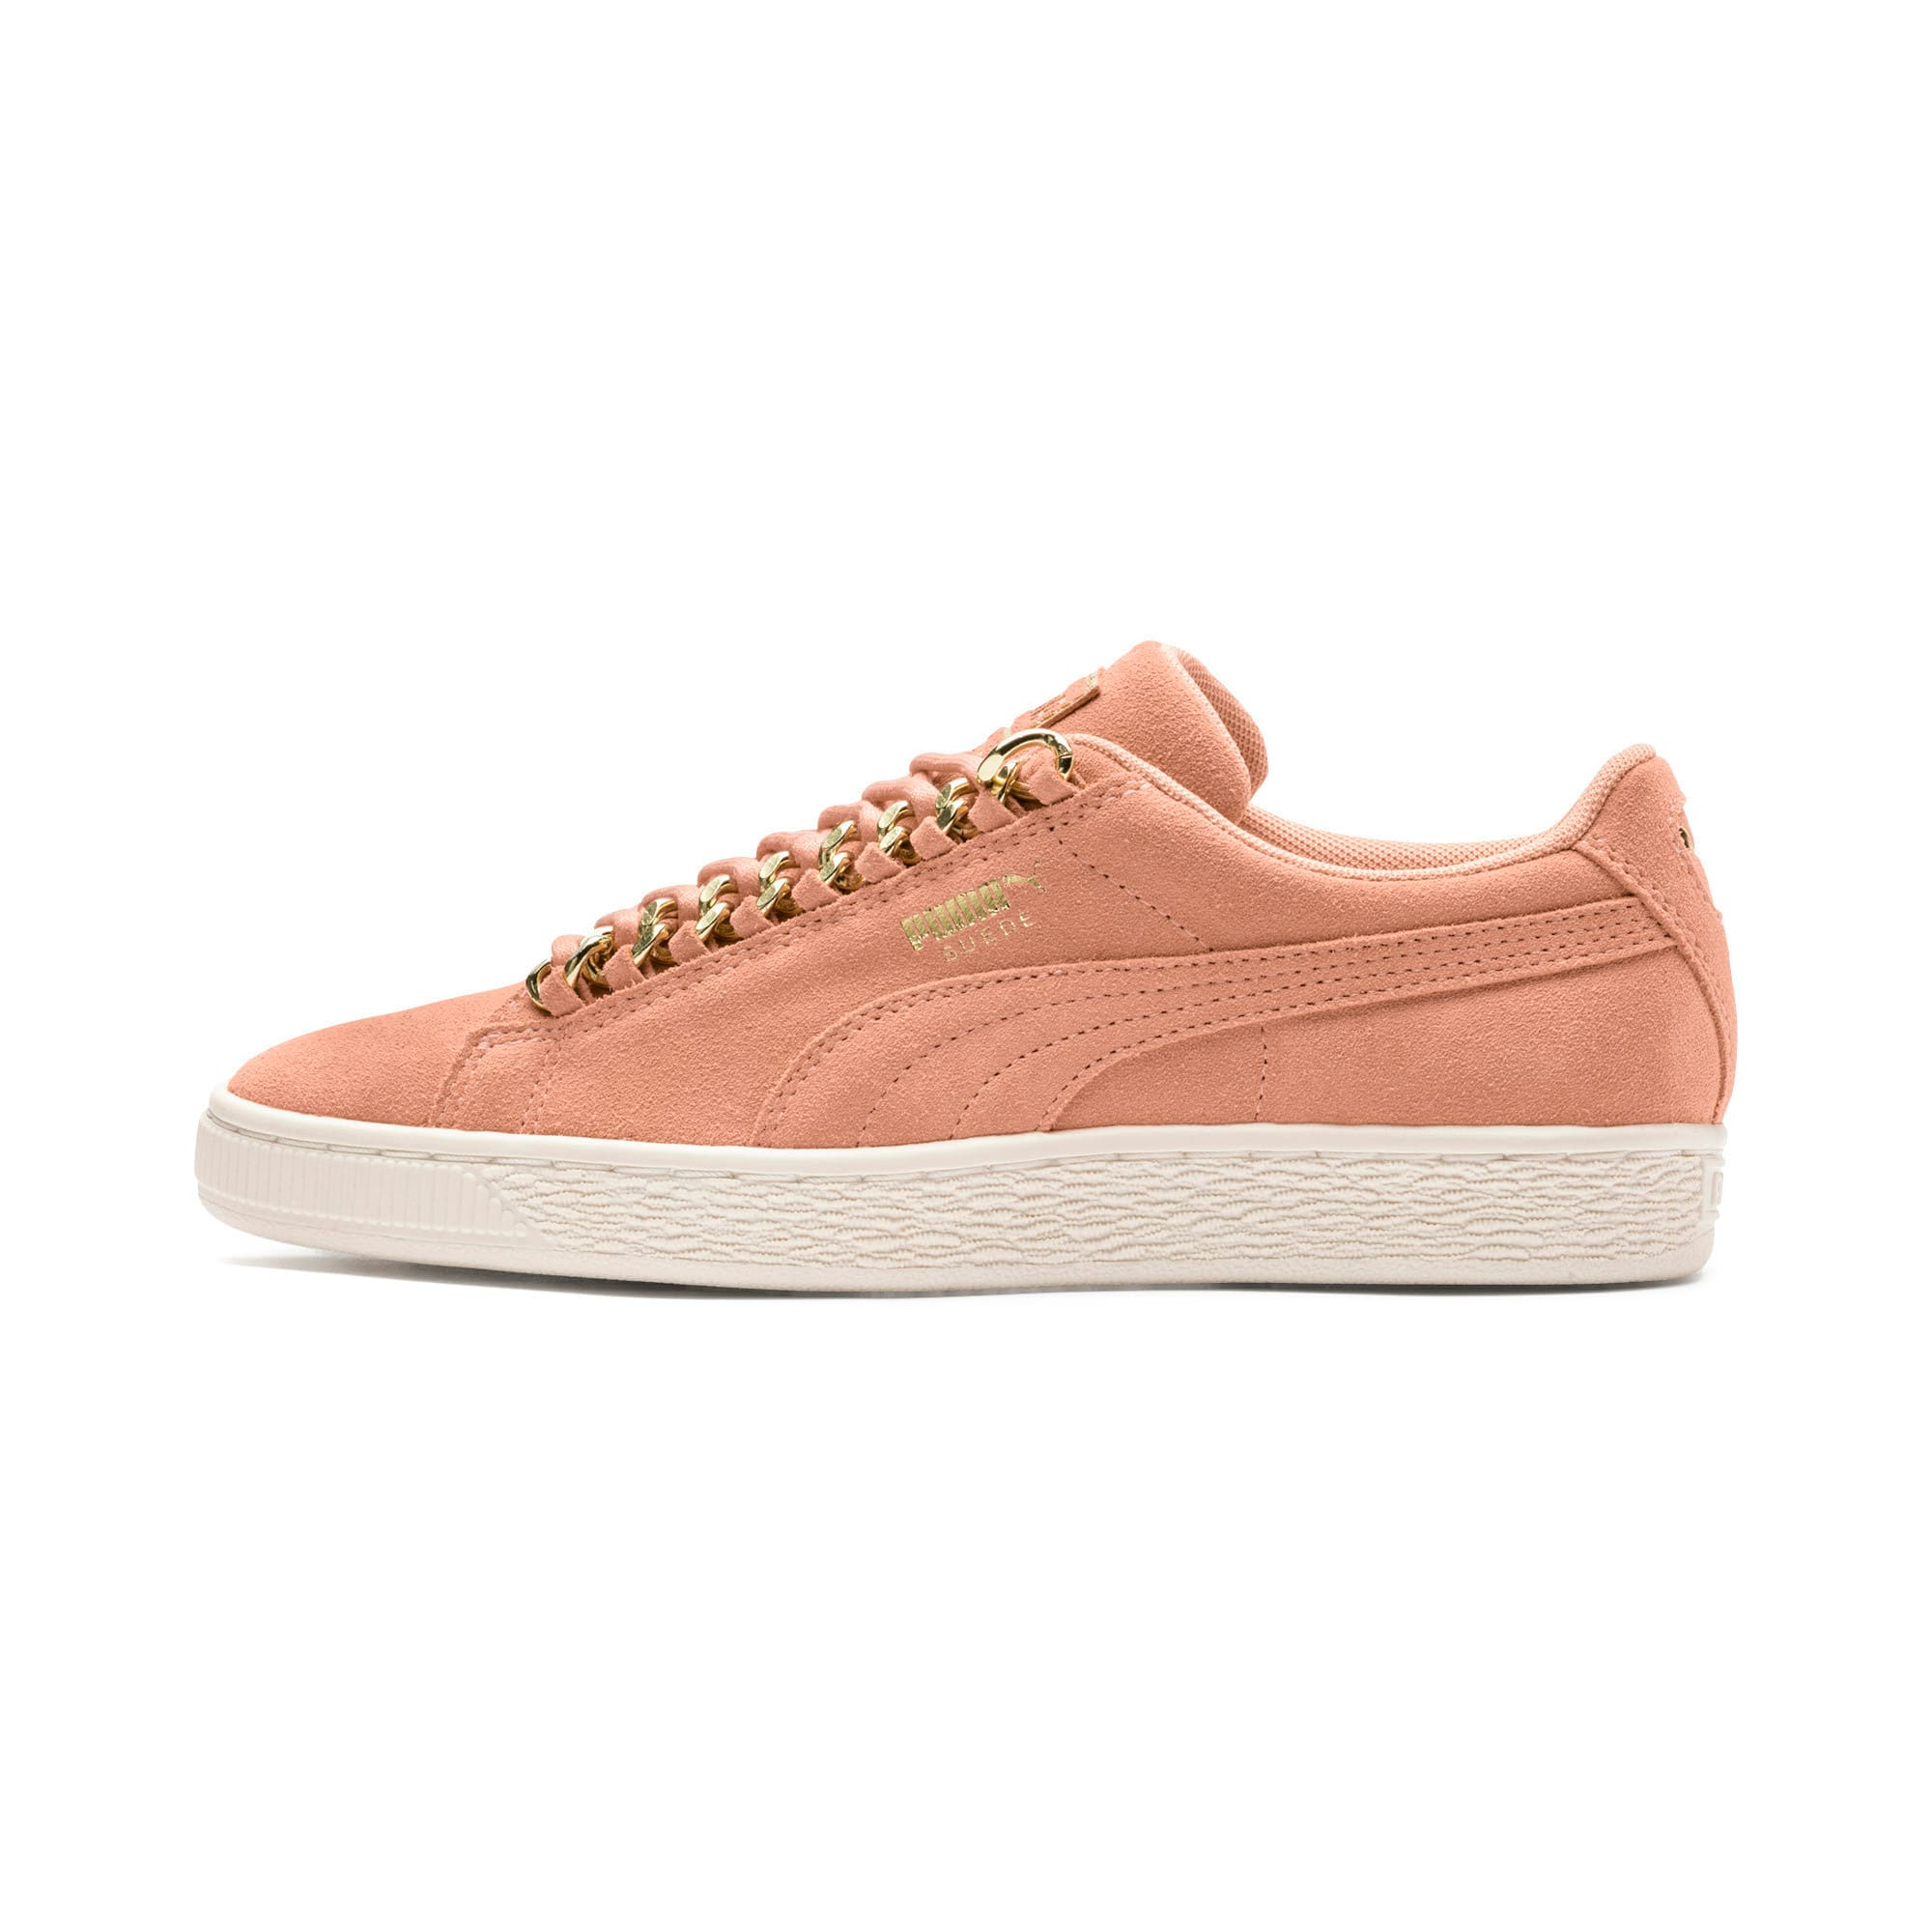 Thumbnail 1 of Suede Classic Chains Women's Trainers, Dusty Coral-Puma Team Gold, medium-IND